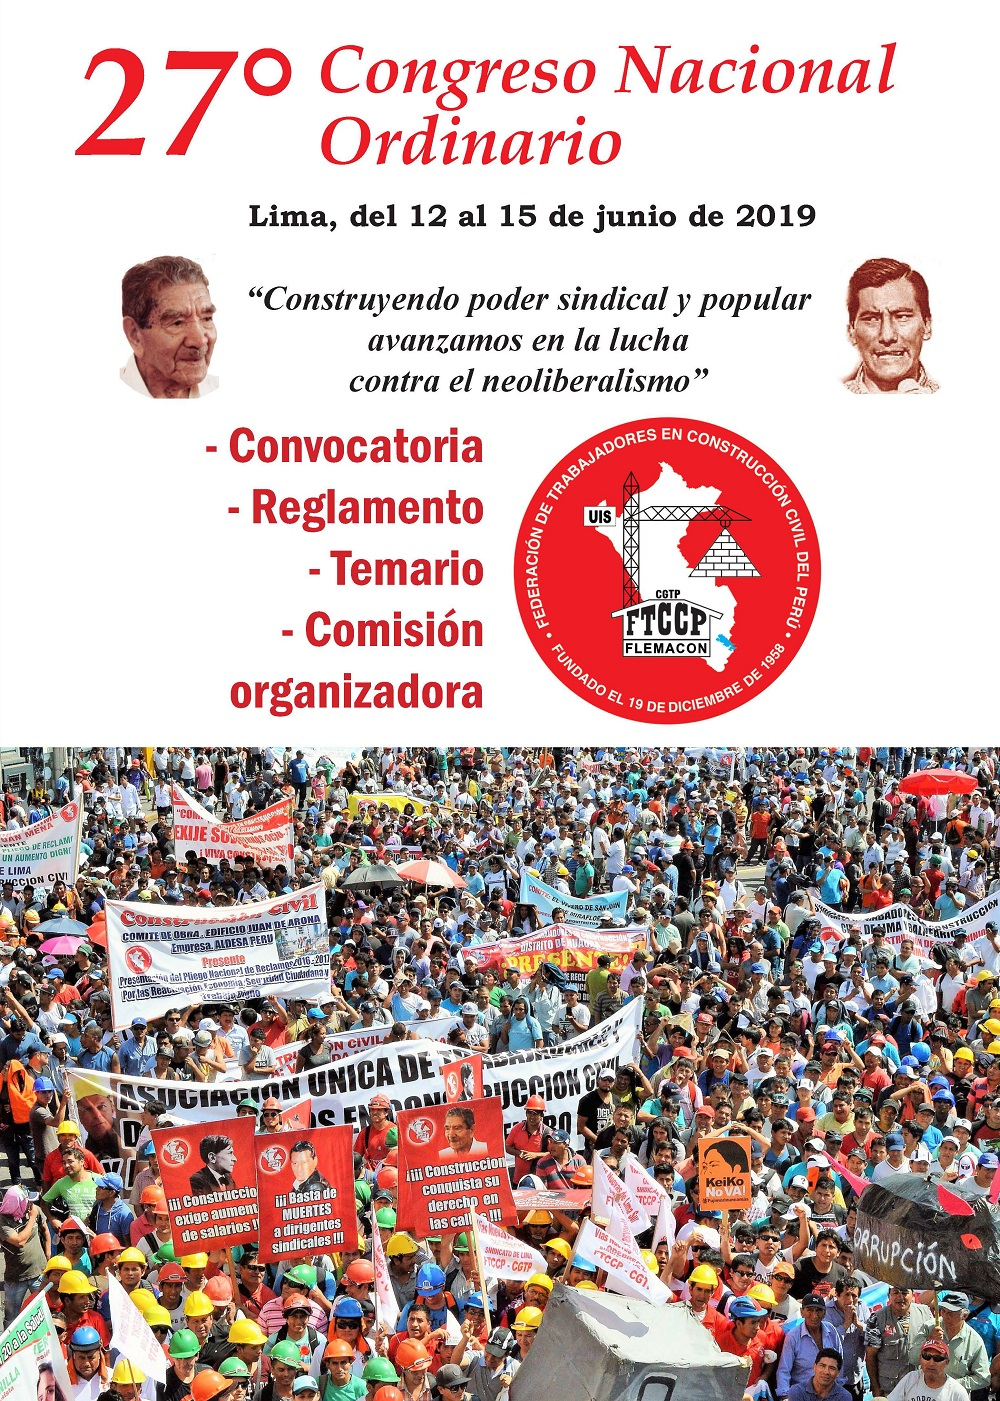 27 Congreso Nacional Ordinario  Convocatoria